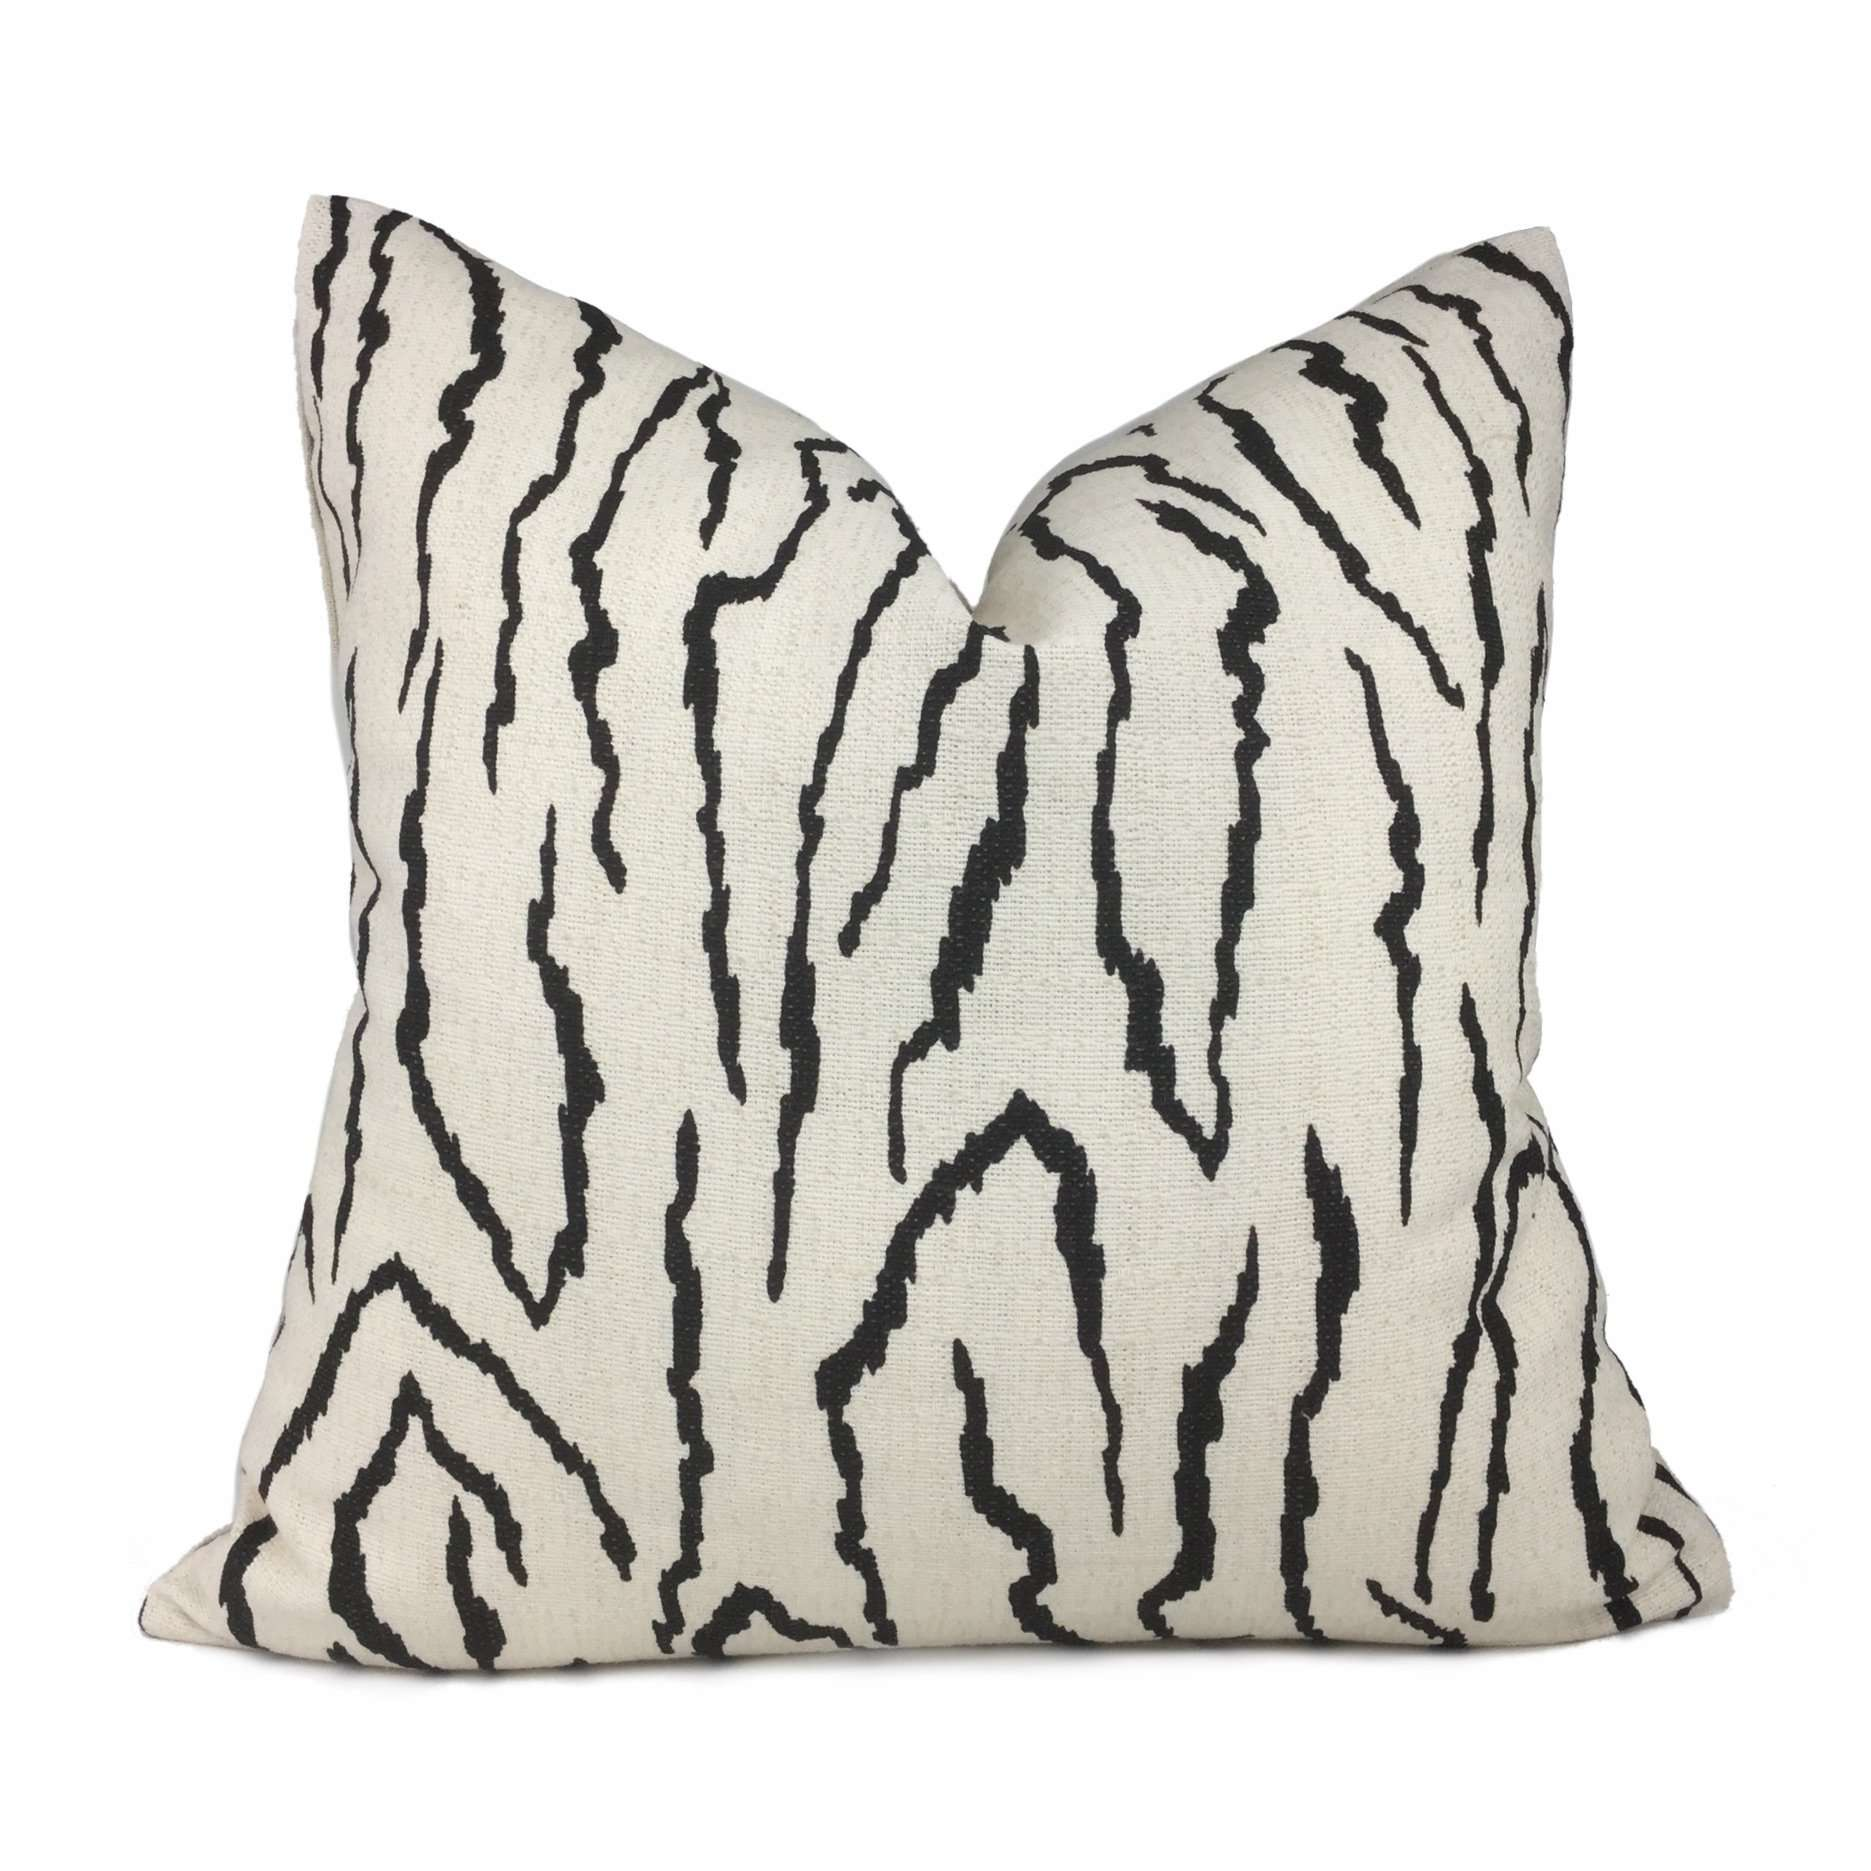 Pingvellir Onyx & Cream Abstract Linear Pillow Cover